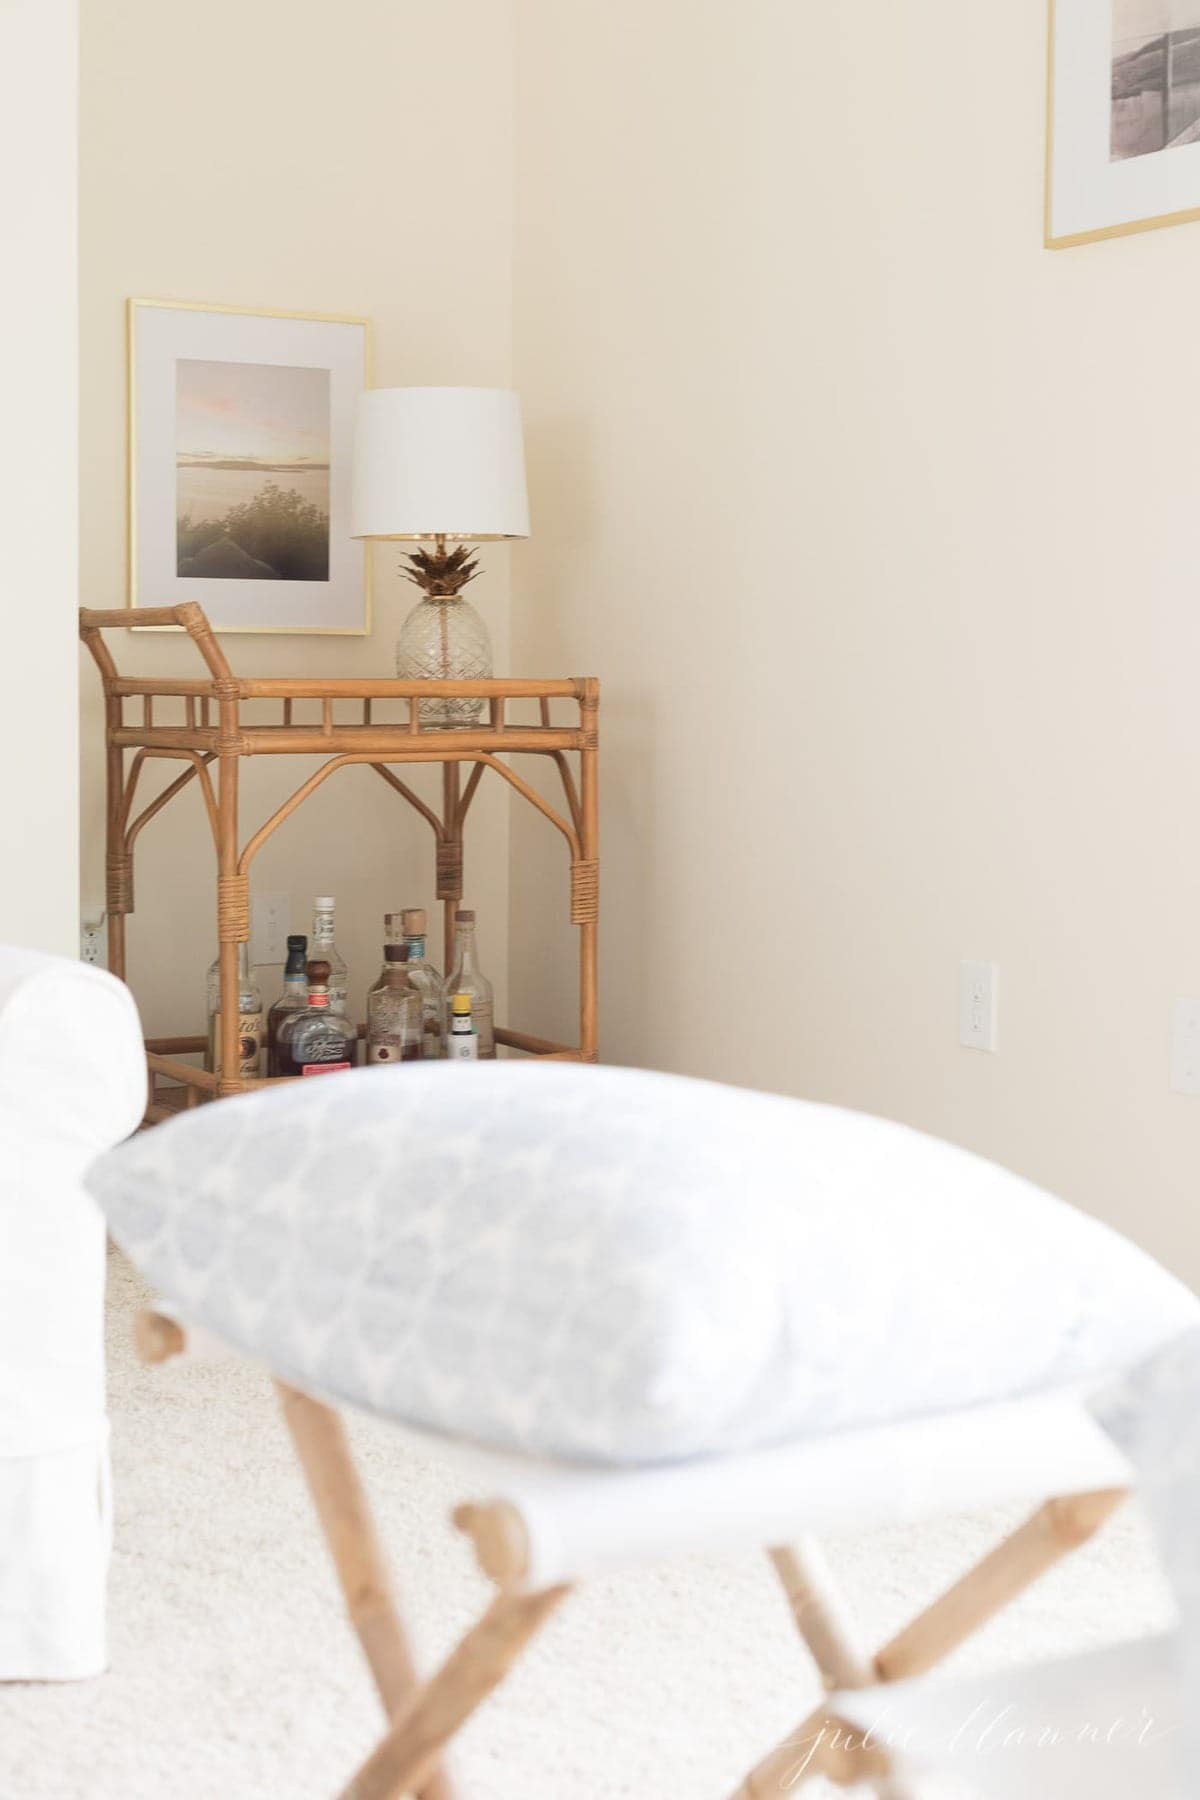 A bamboo style bar cart in a white painted living room.